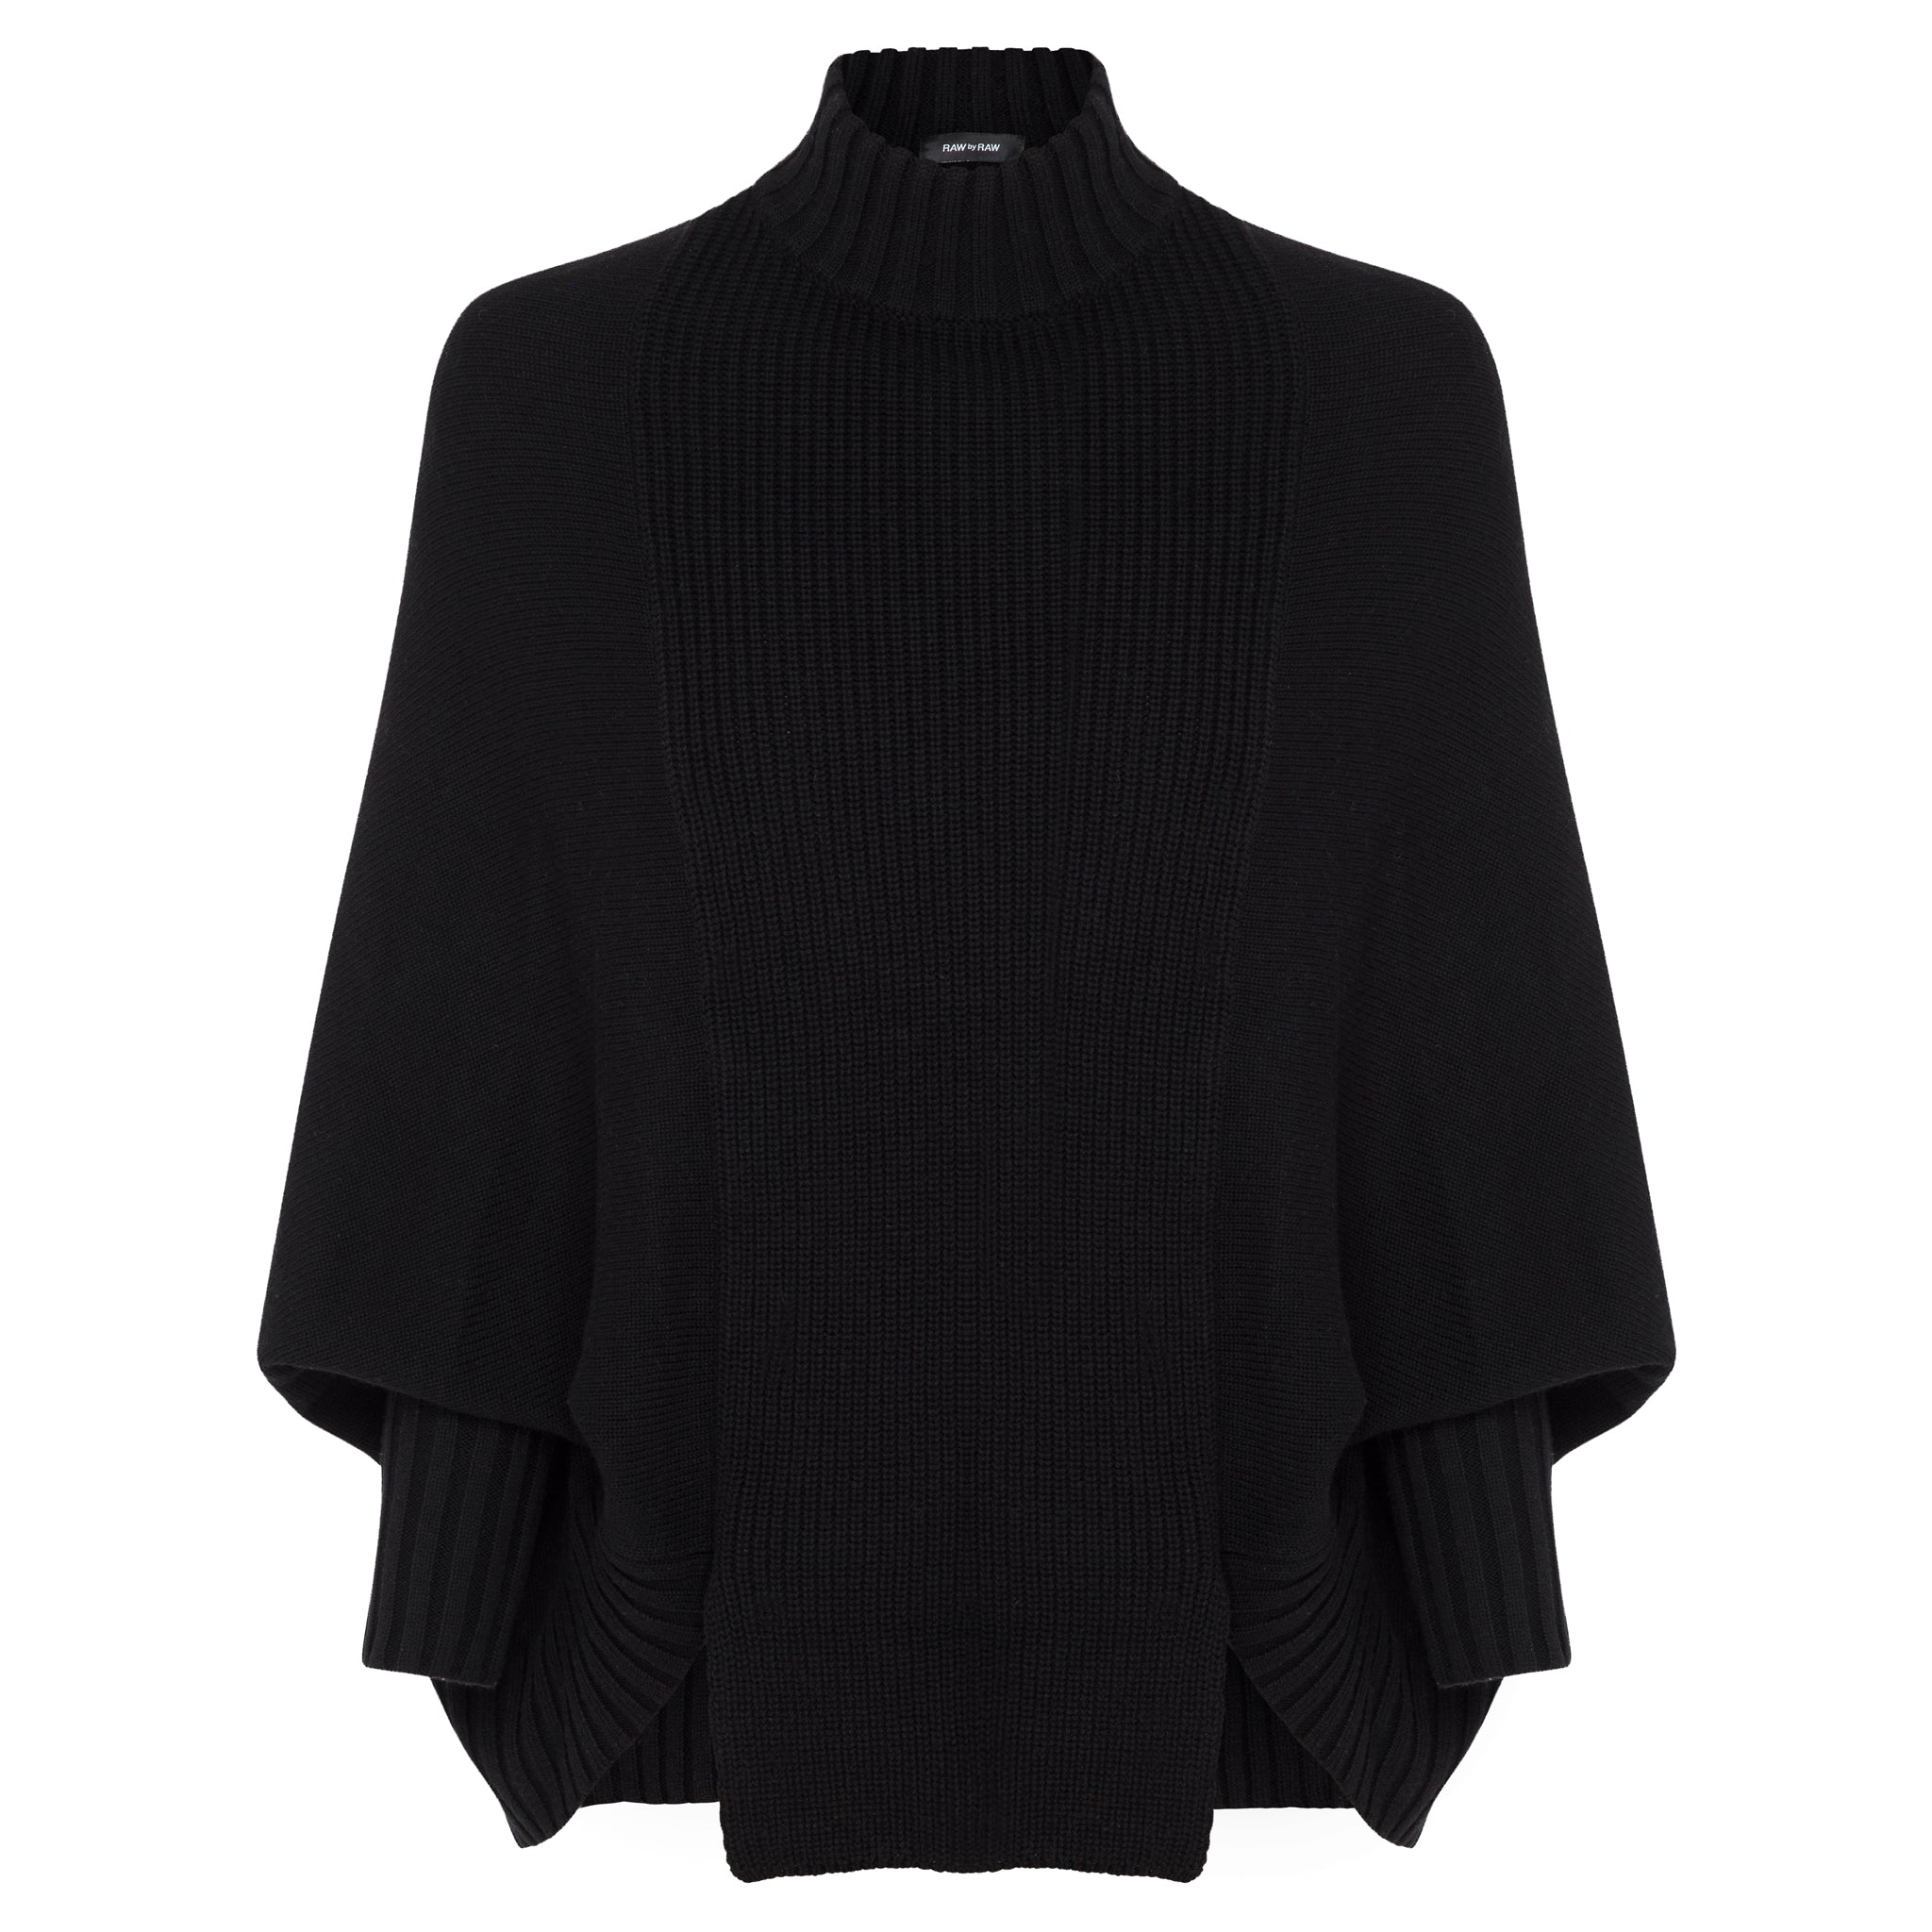 Antonia Knit - Jet Black